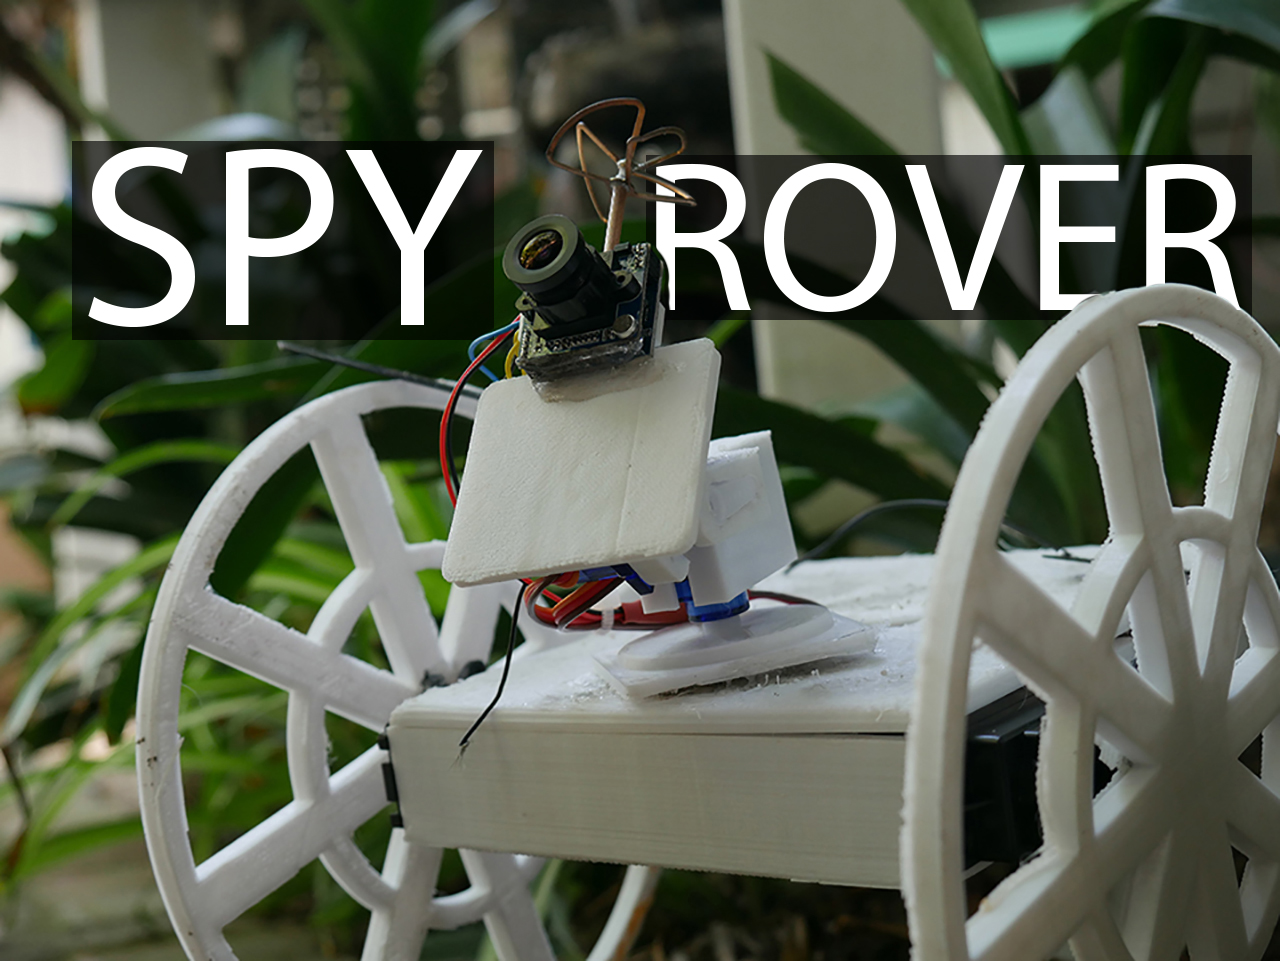 Picture of How to Make a Remote Controlled Spy Rover